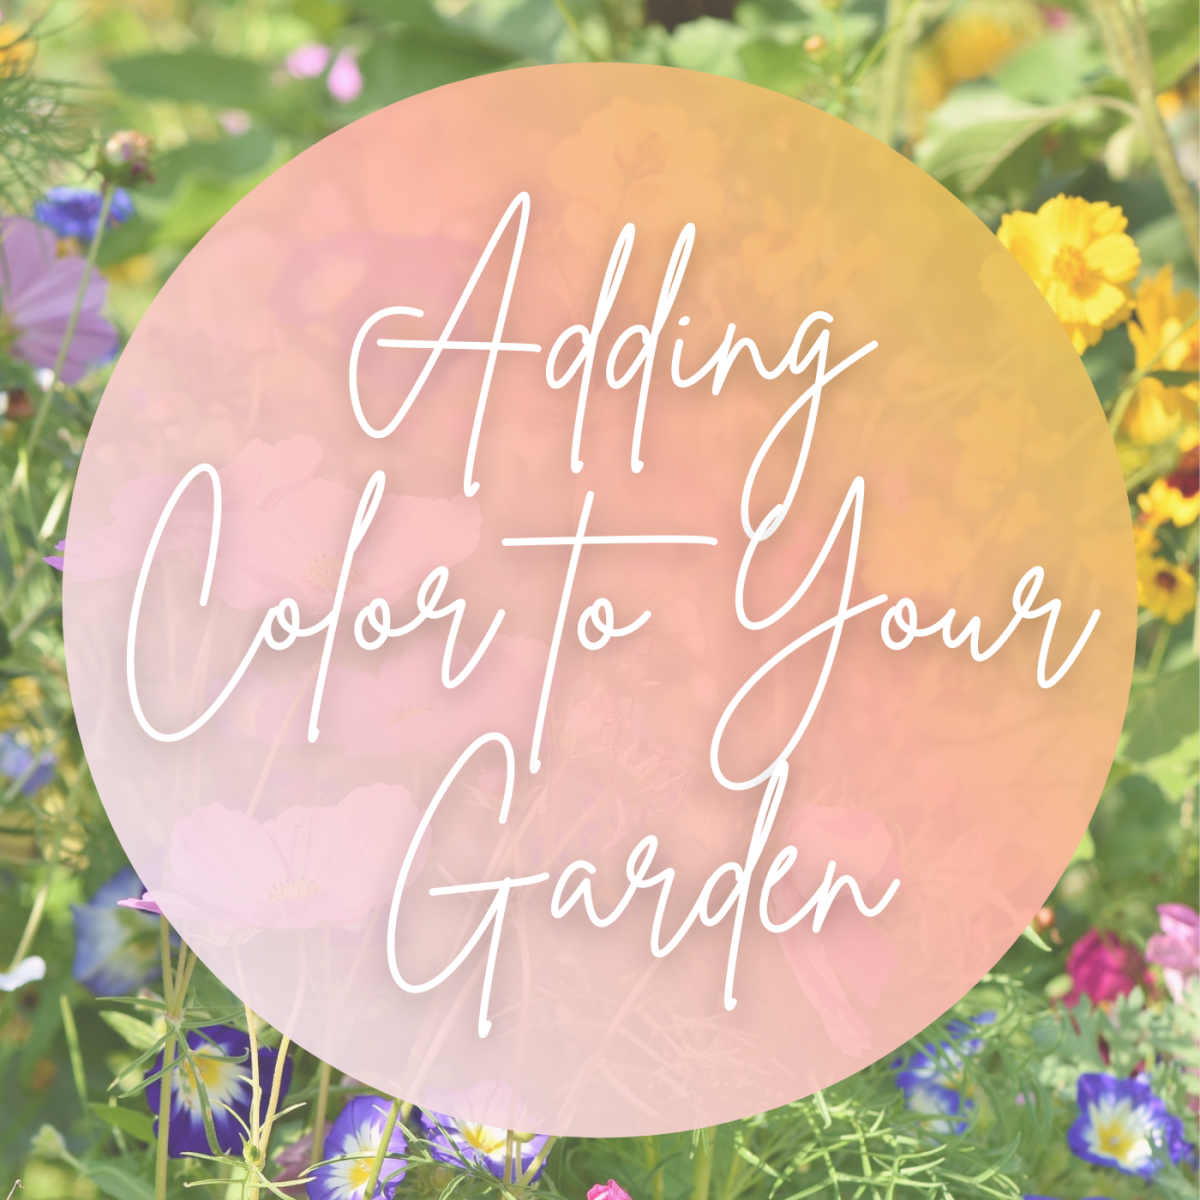 Adding color to your garden